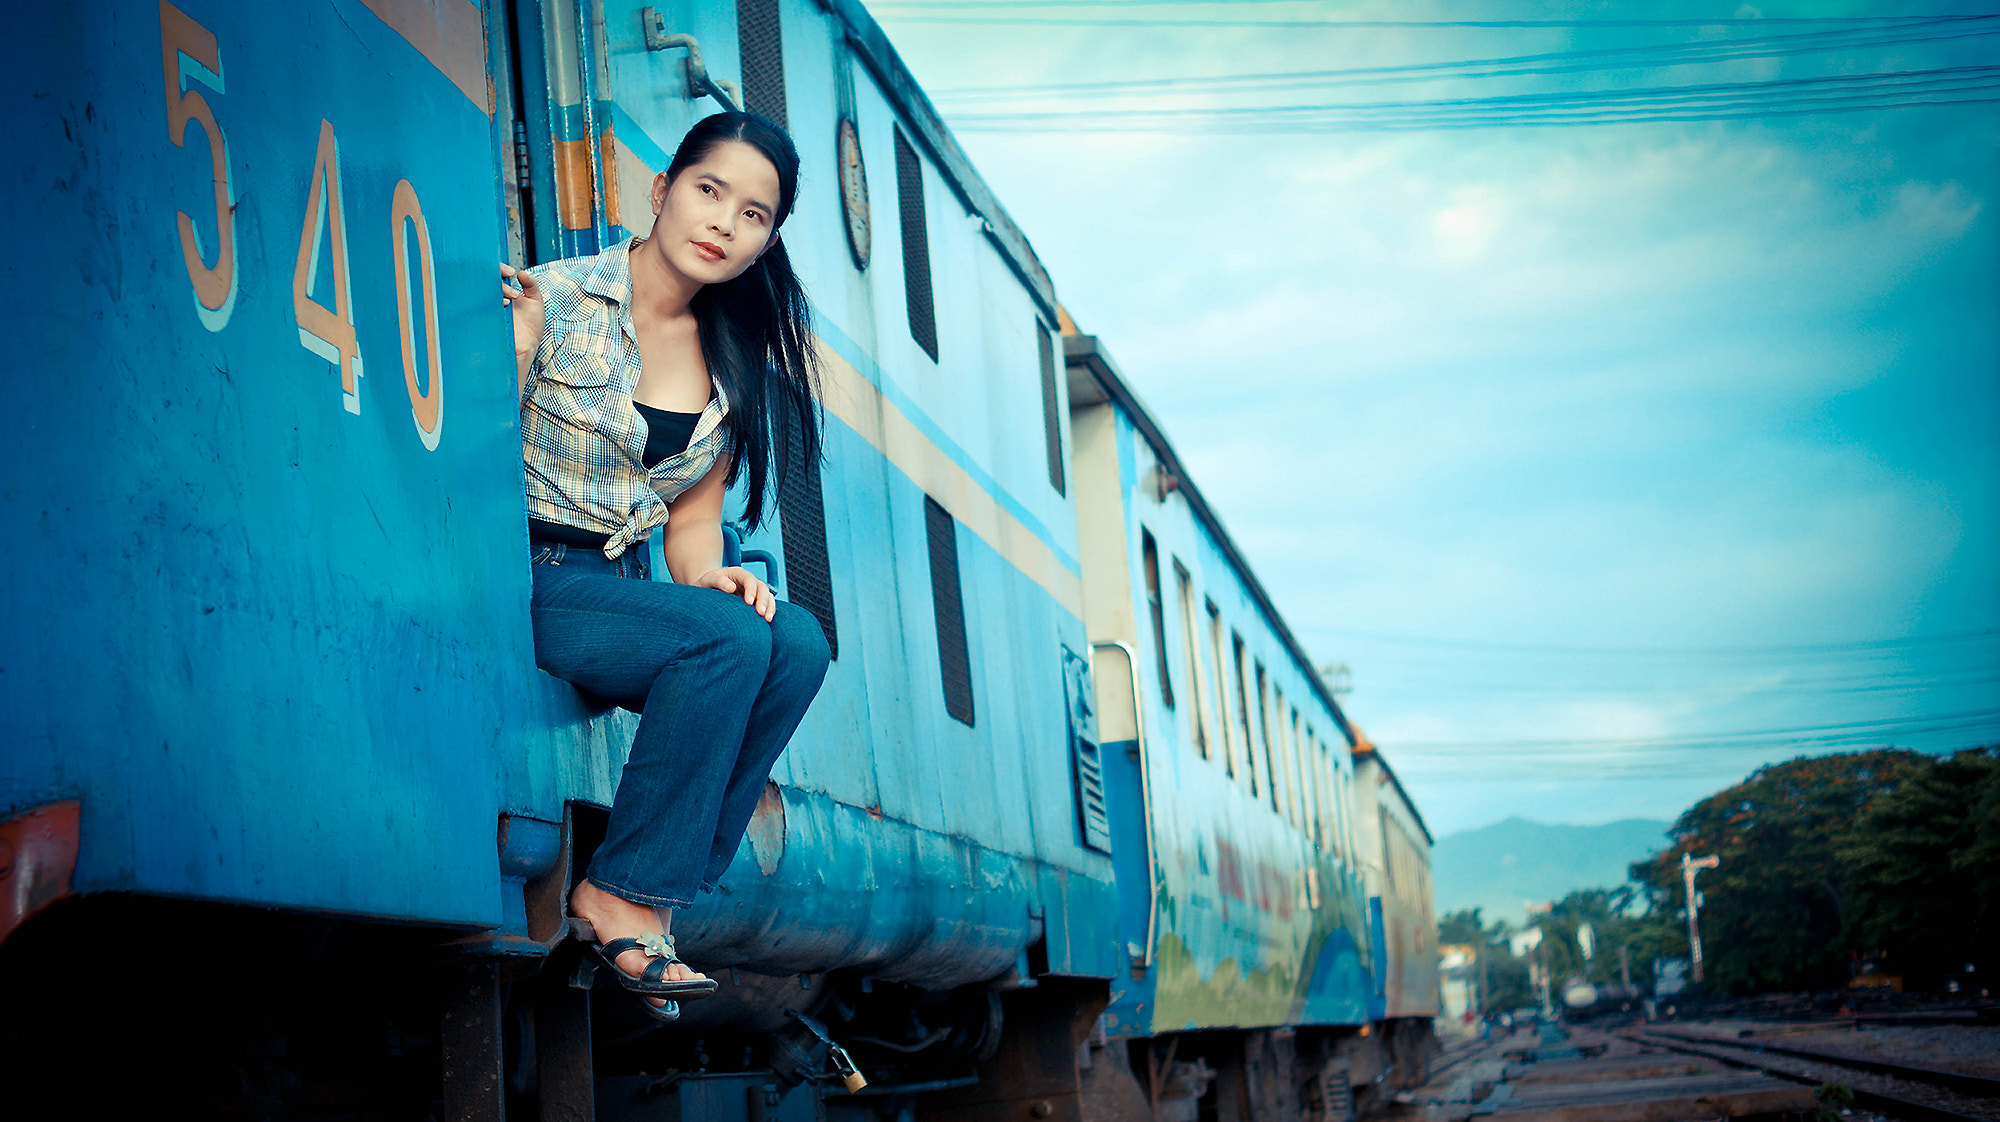 Photograph Sai in train station by lionpink on 500px